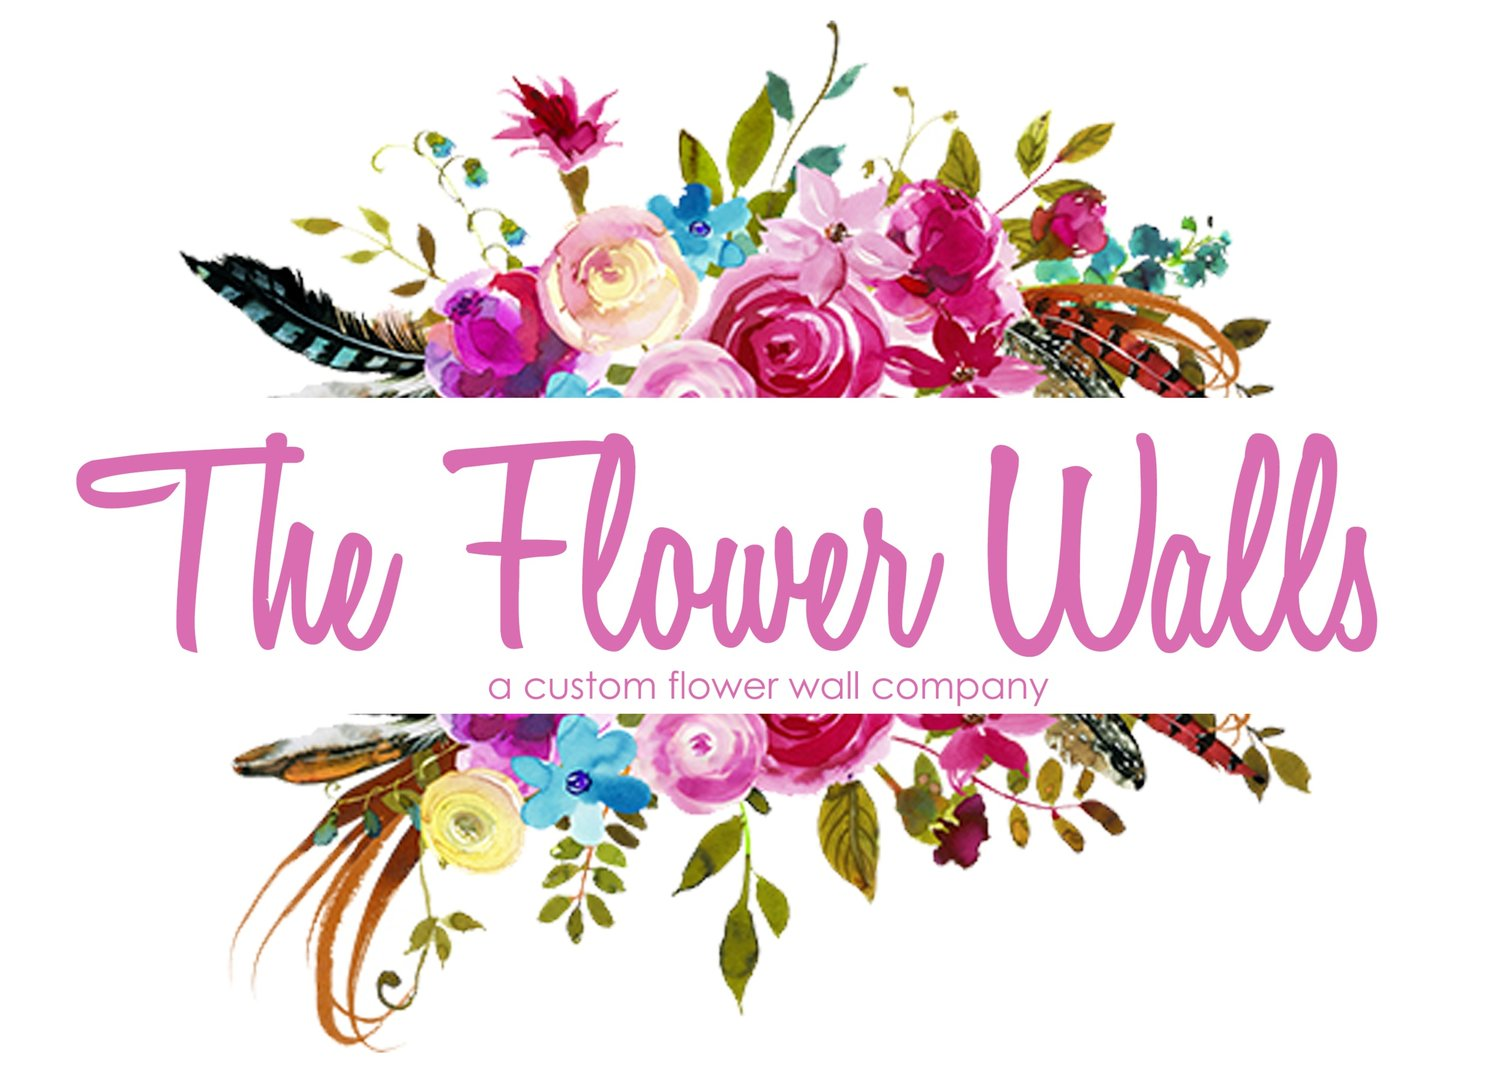 The Flower Walls - Silk Flower Walls